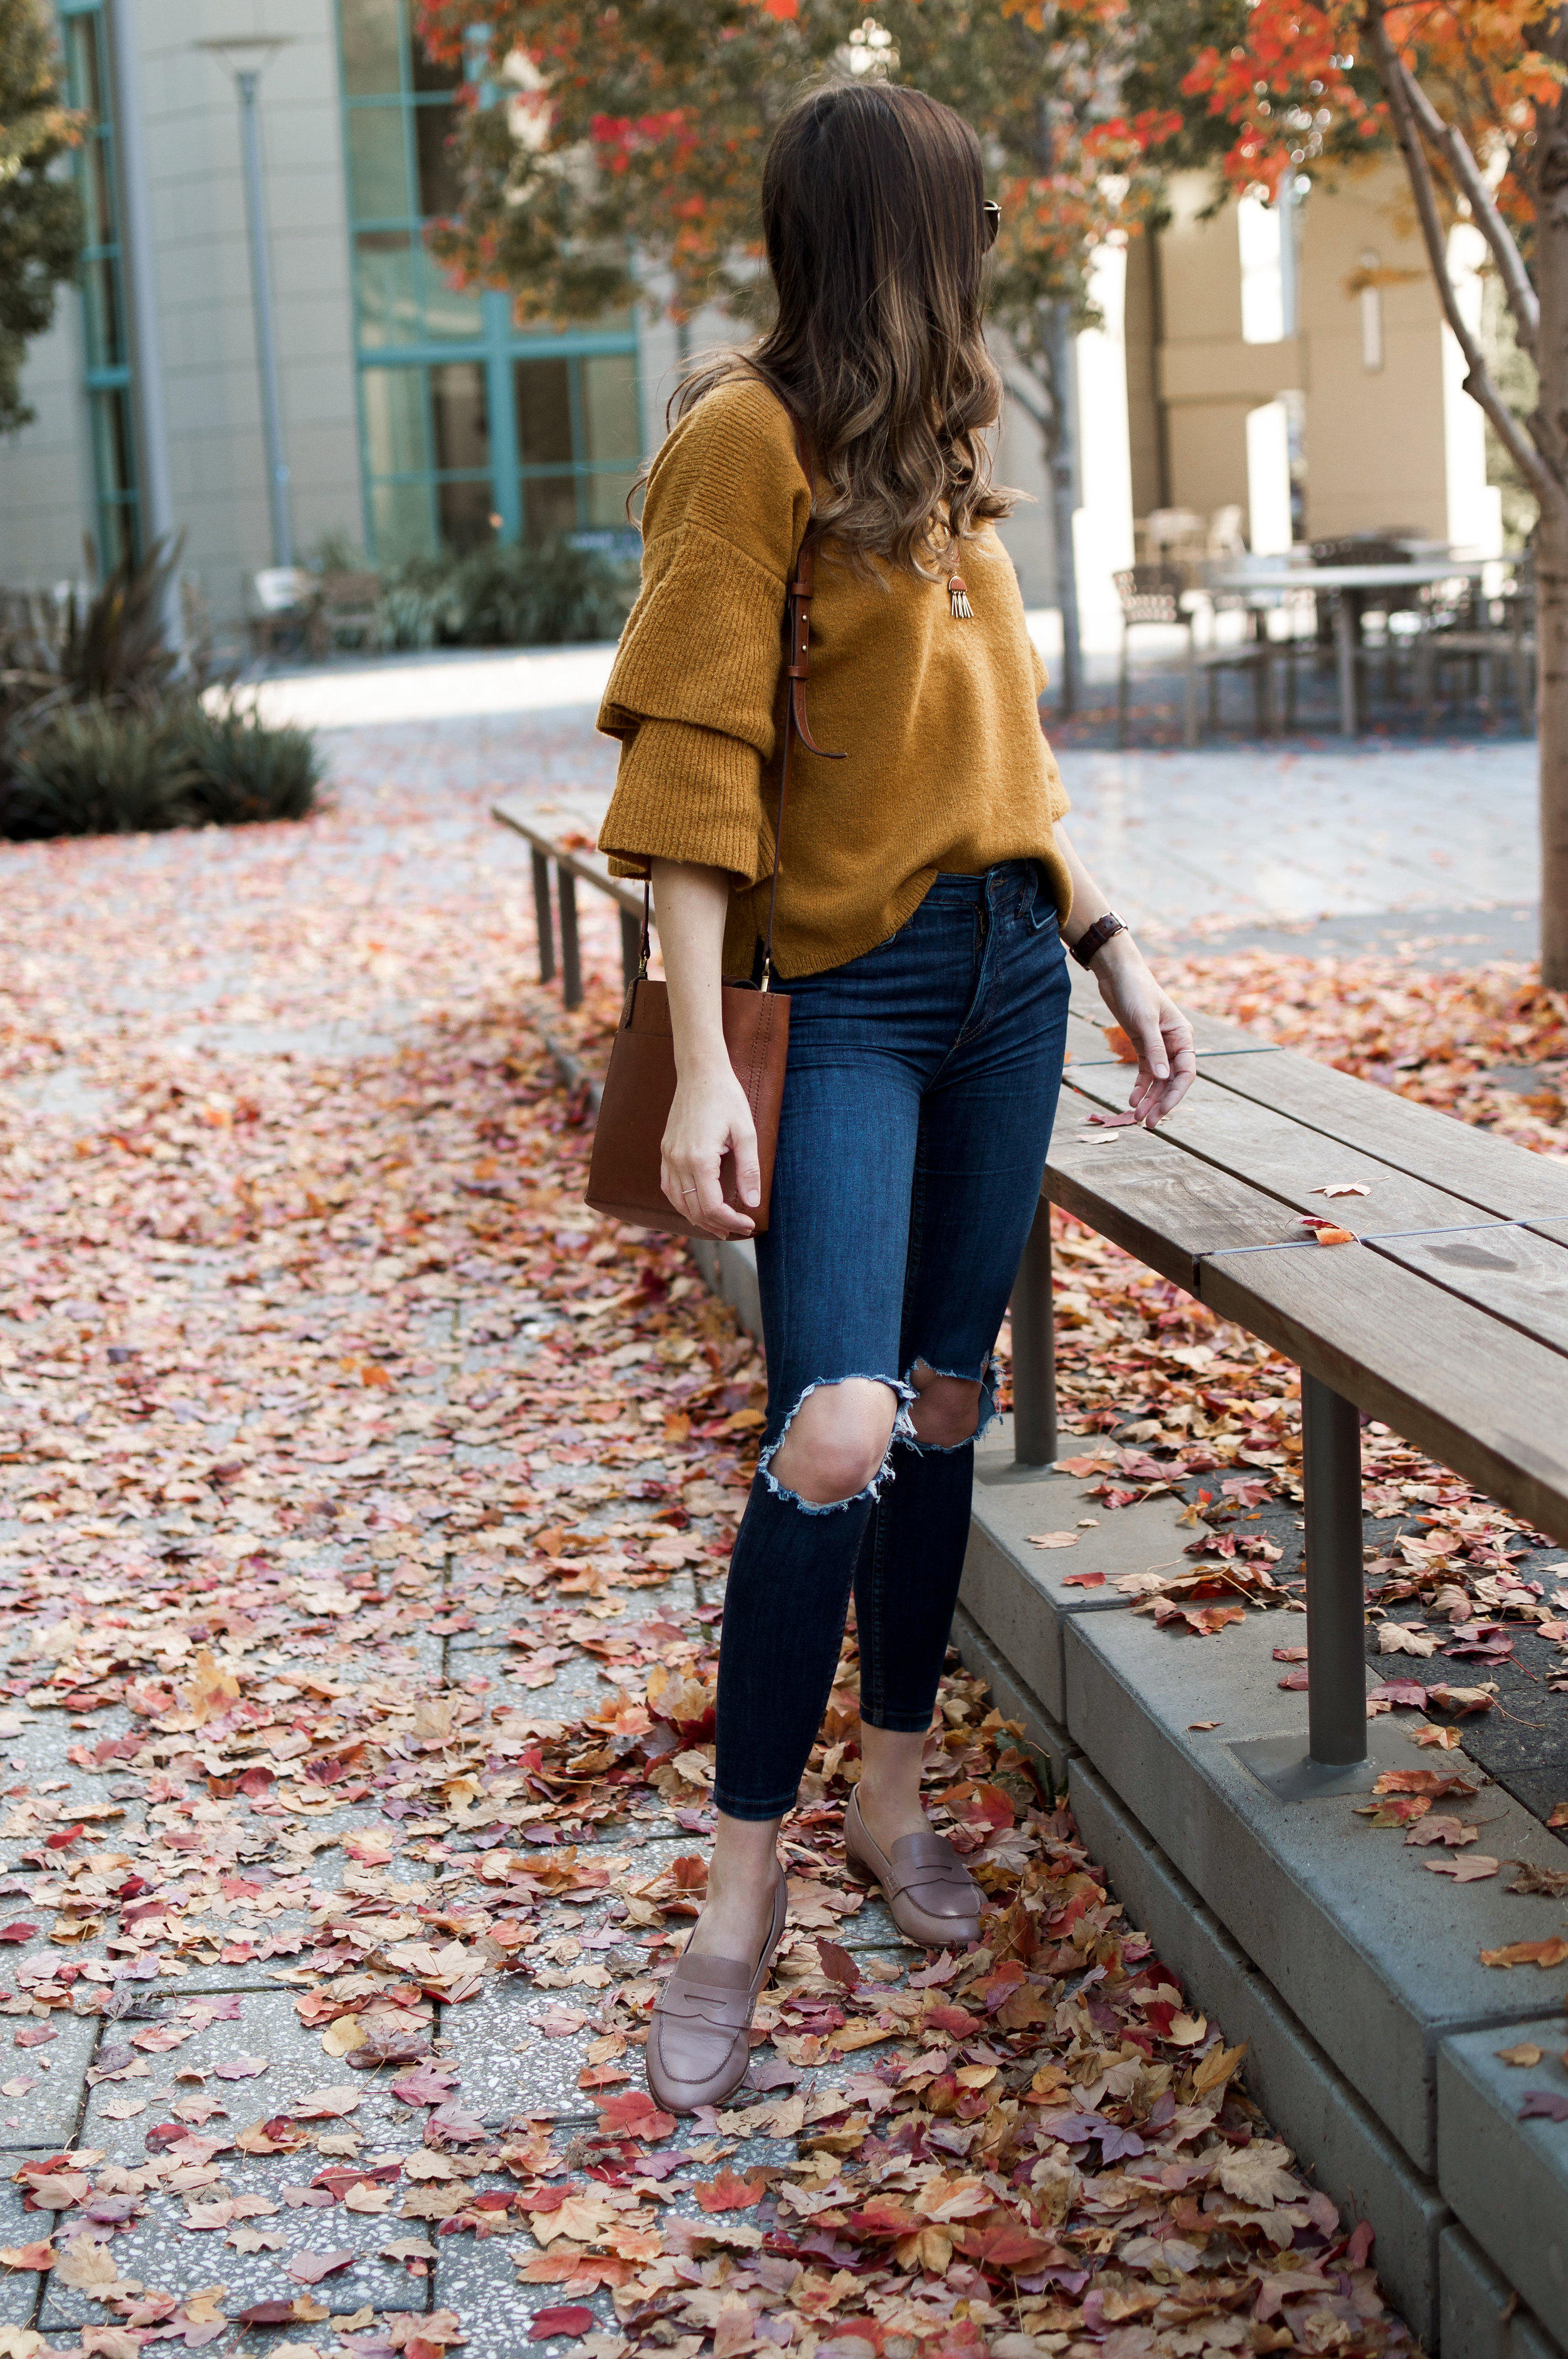 Shop the Look Below.  Madewell Sweater  |  Free People Jeans  |  Franco Sarto Flats |  BlankNYC Jacket  |  Madewell Bag  |  Ray-Ban Sunglasses  |  Madewell Necklace